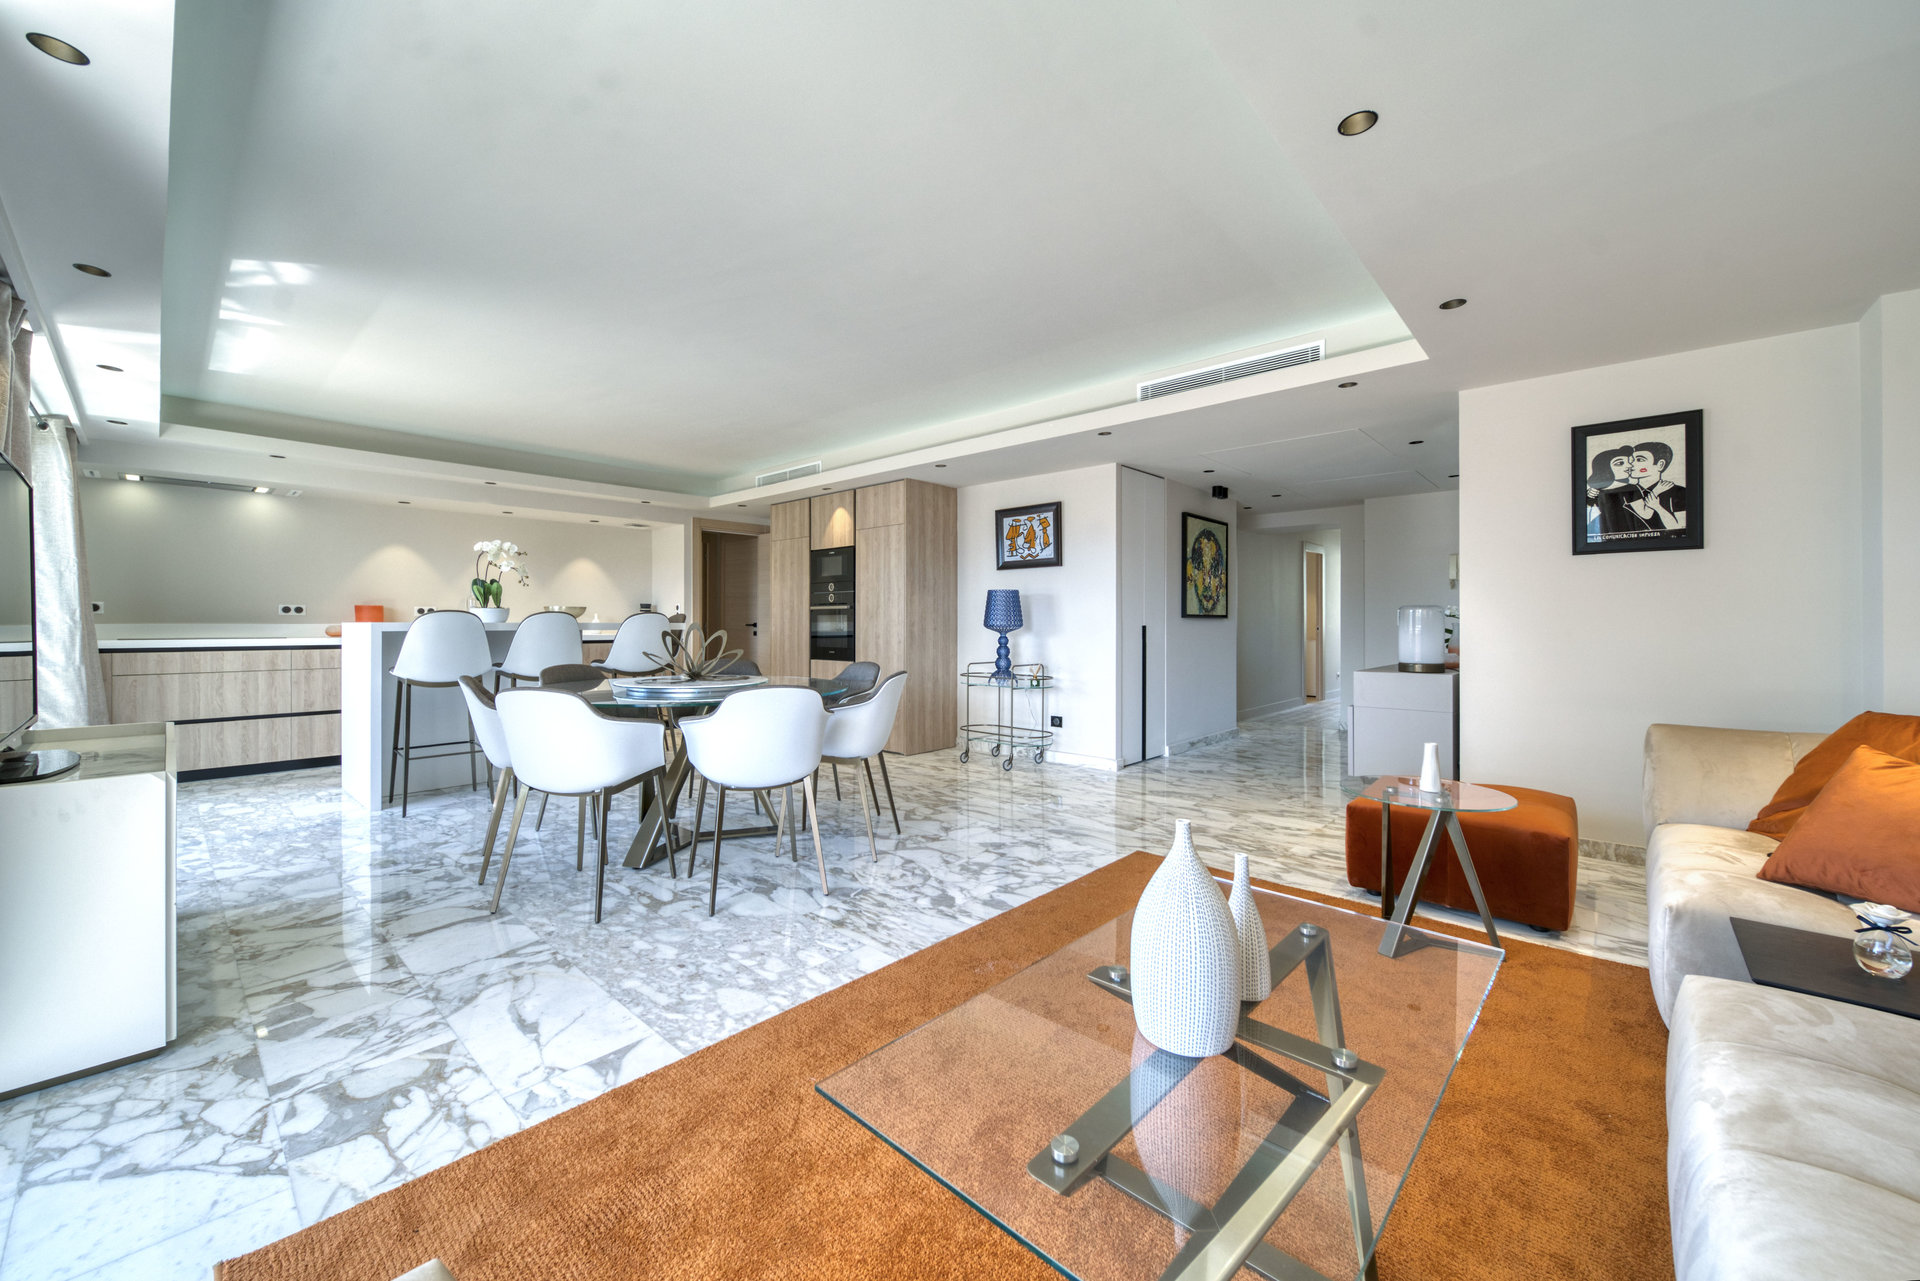 BEAUTIFUL RENOVATED APARTMENT WITH A TERRACE OF 165 SQM